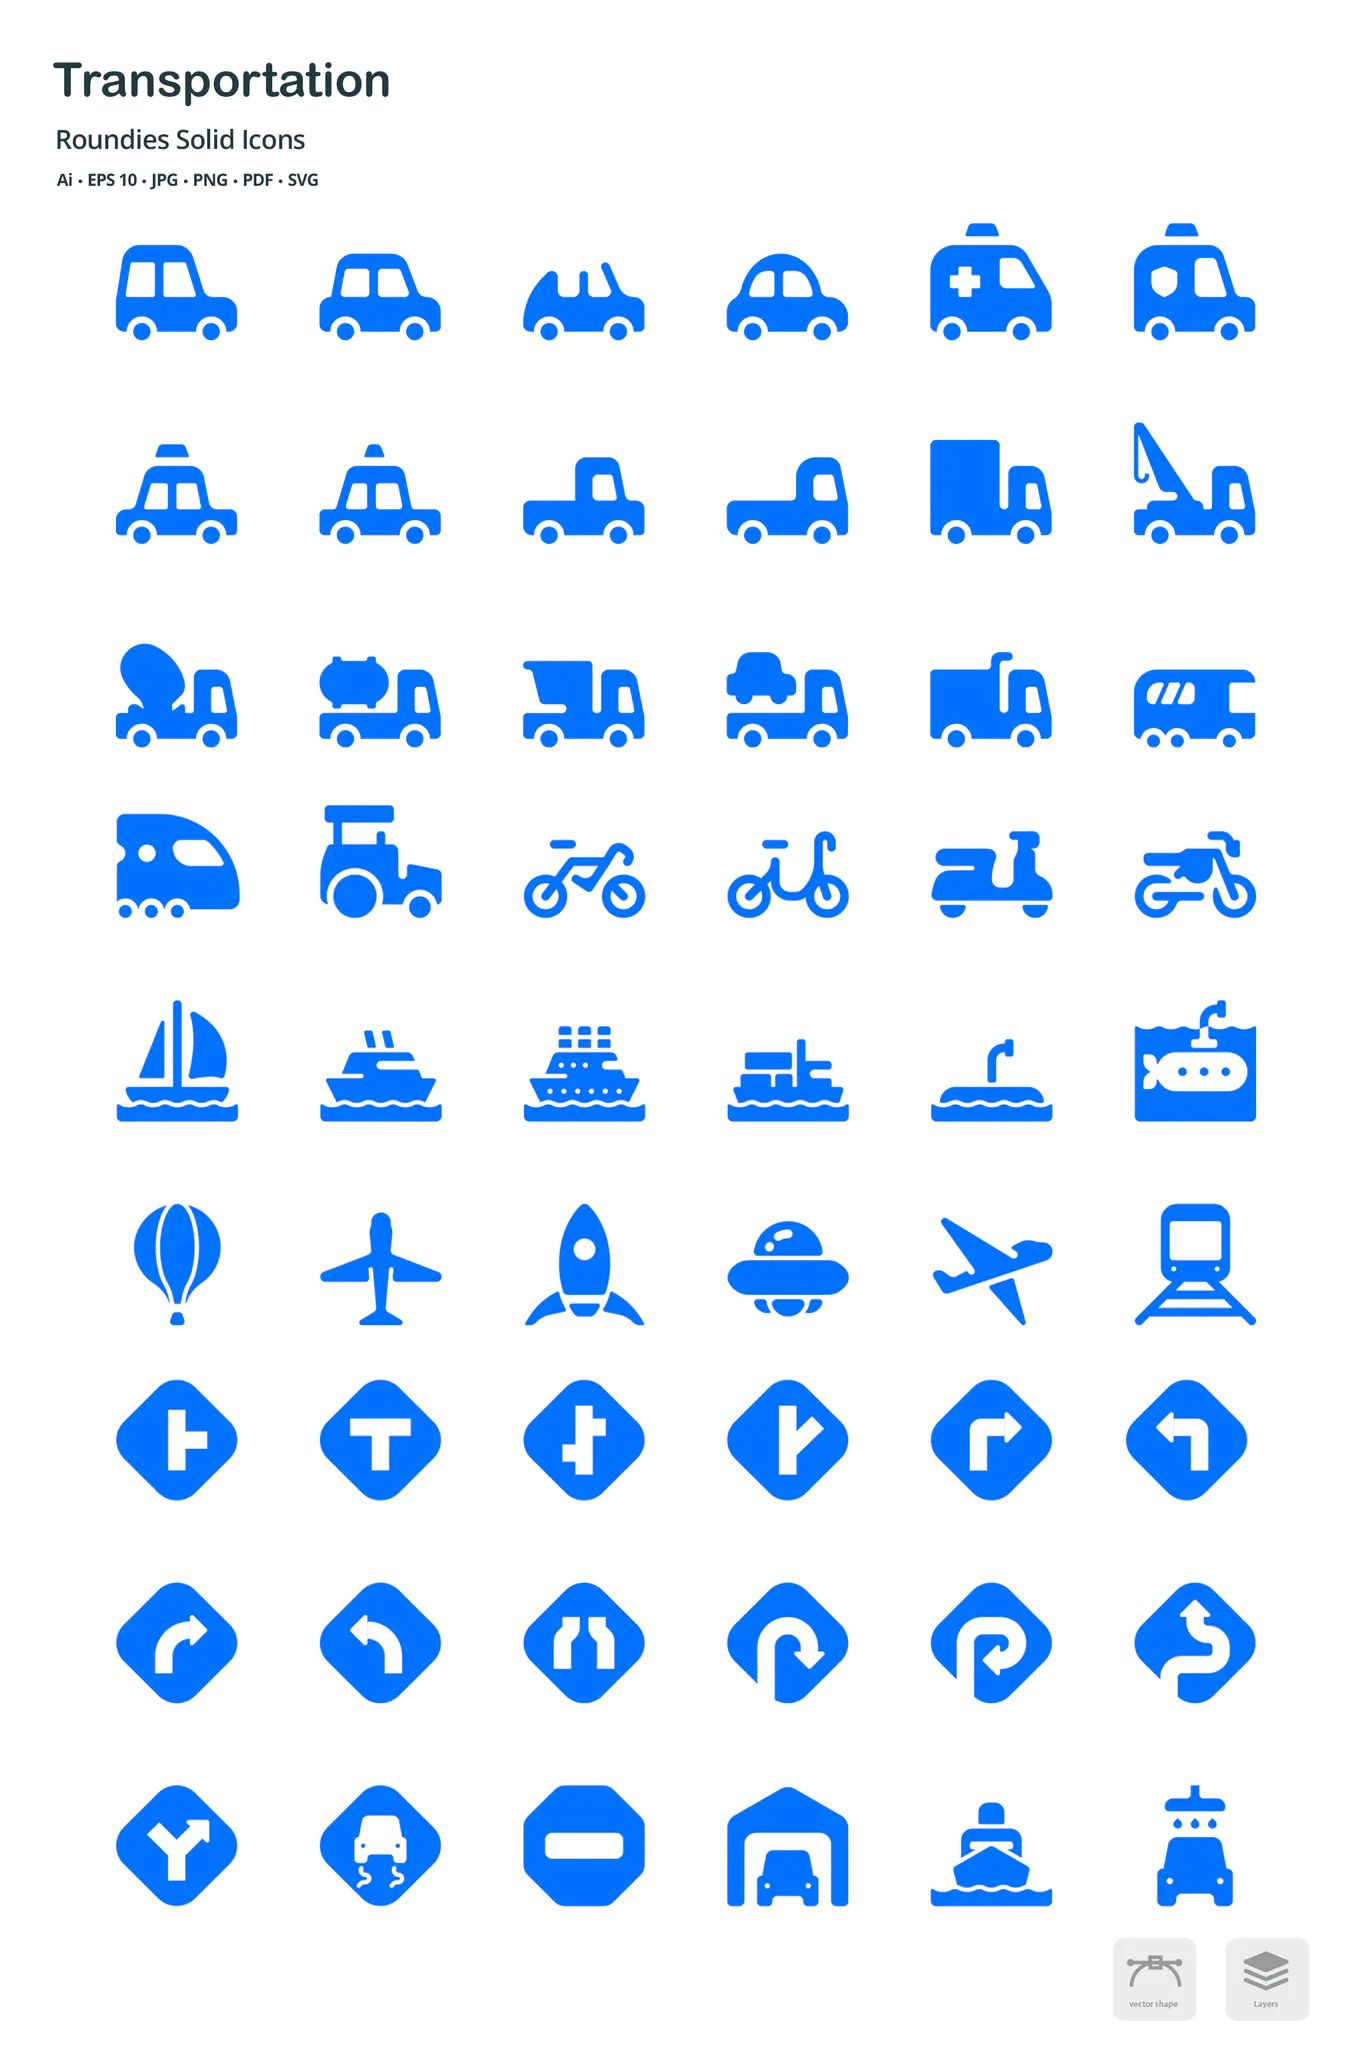 Transportation Roun S Solid Glyph Icons By Roundicons On